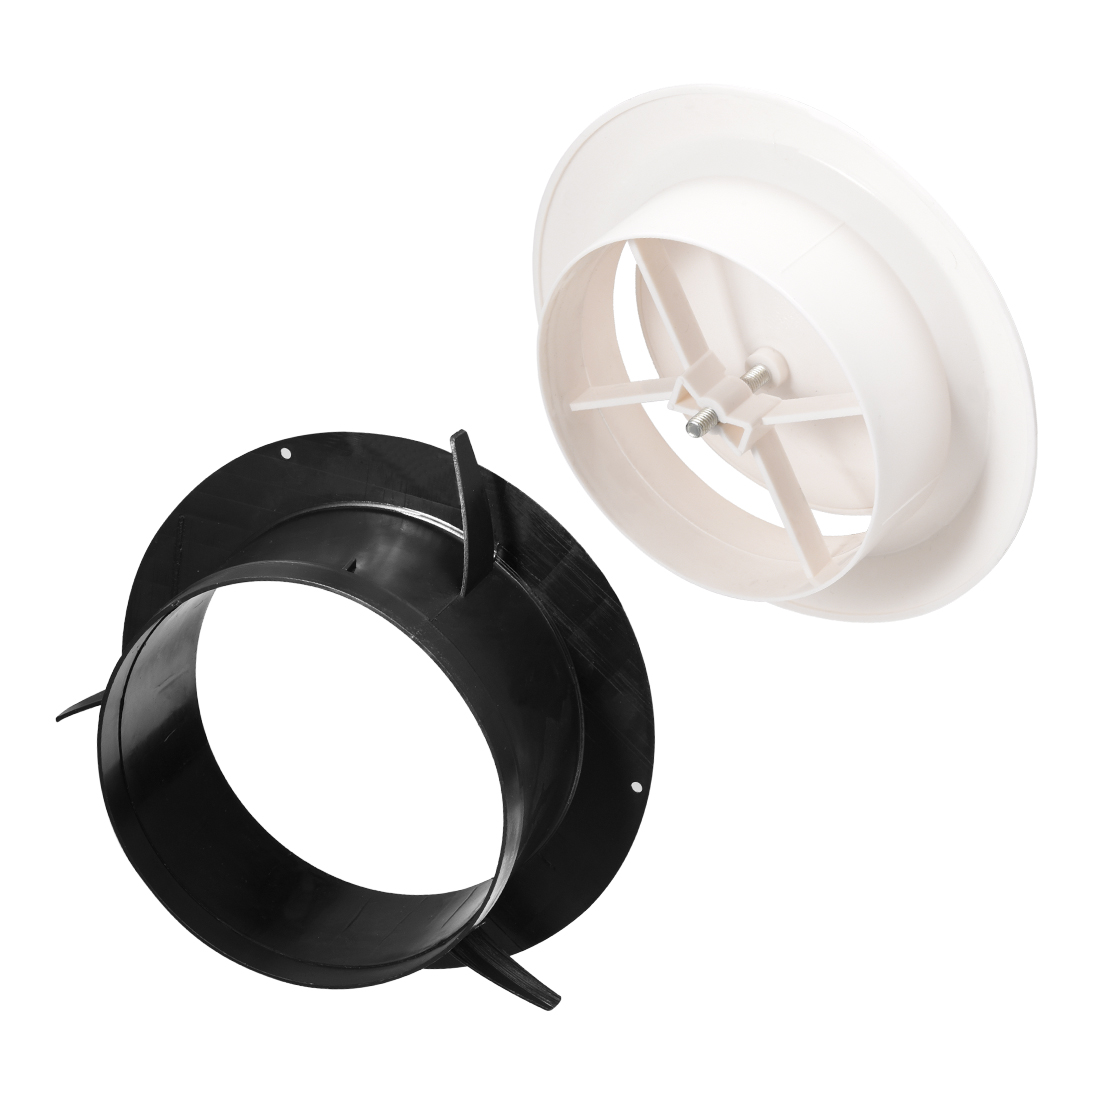 6 inch air vent circular abs white cover adjustable exhaust vent